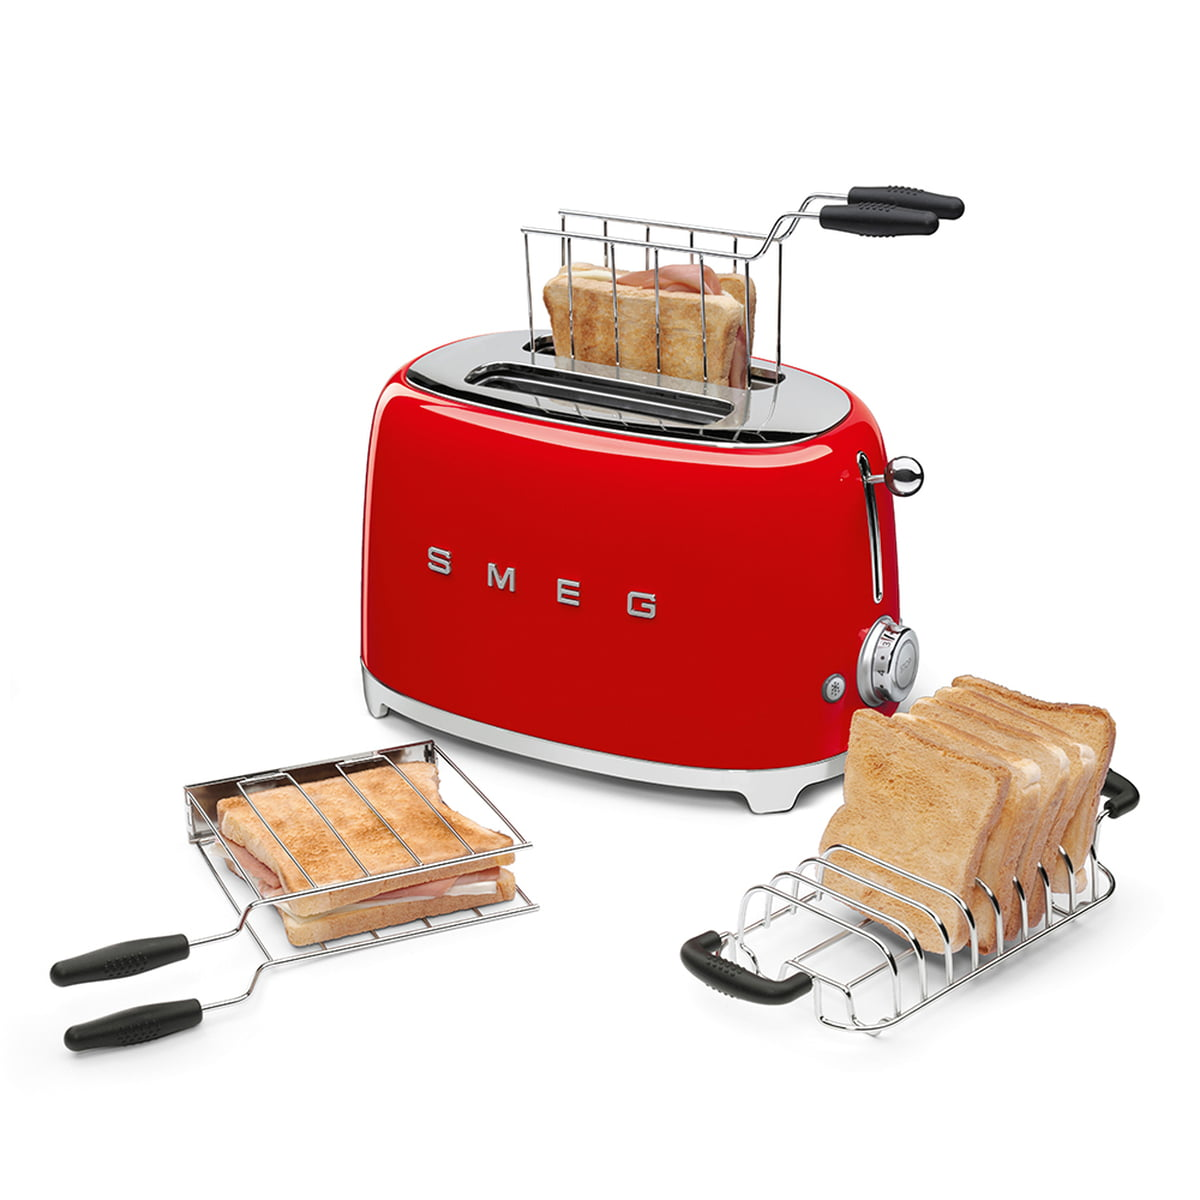 Smeg - Bread roll roasting attachment for tsf01/tsf03 toaster, stainless  steel